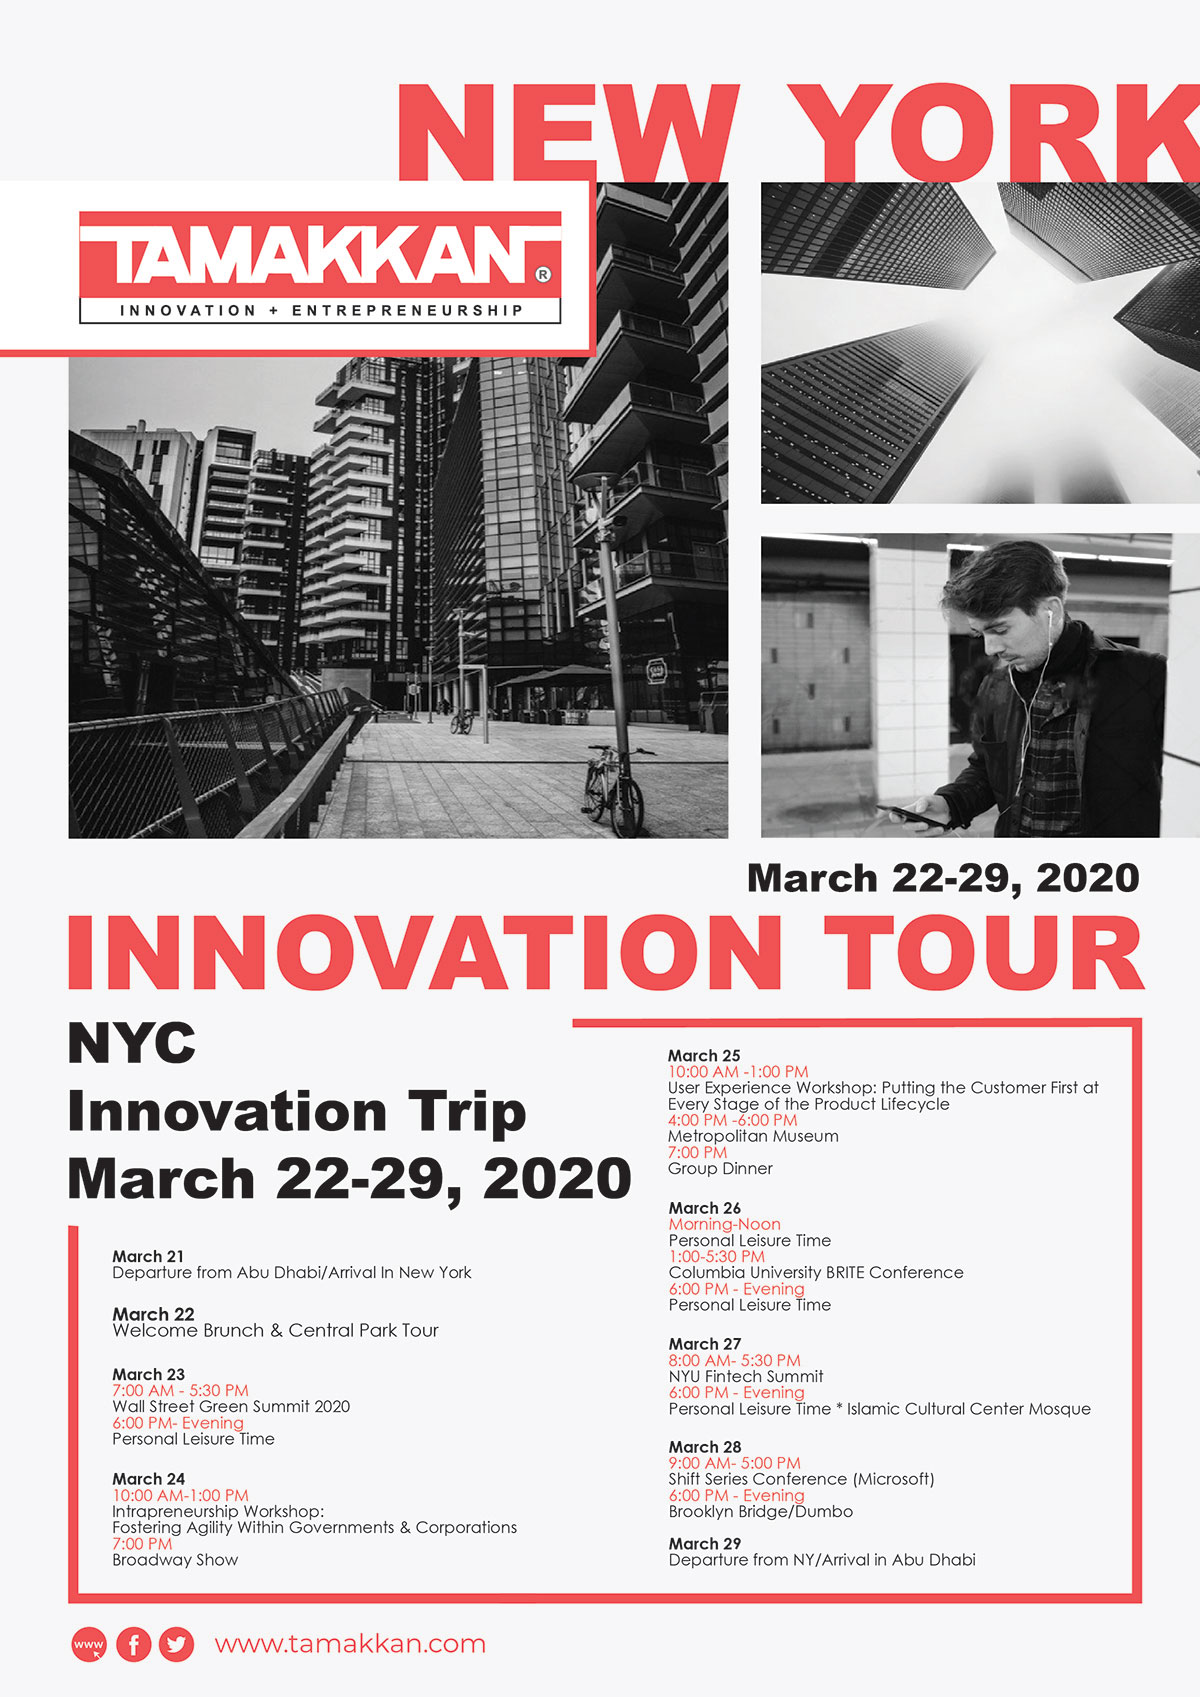 Tamakkan New York Innovation Tour 2020